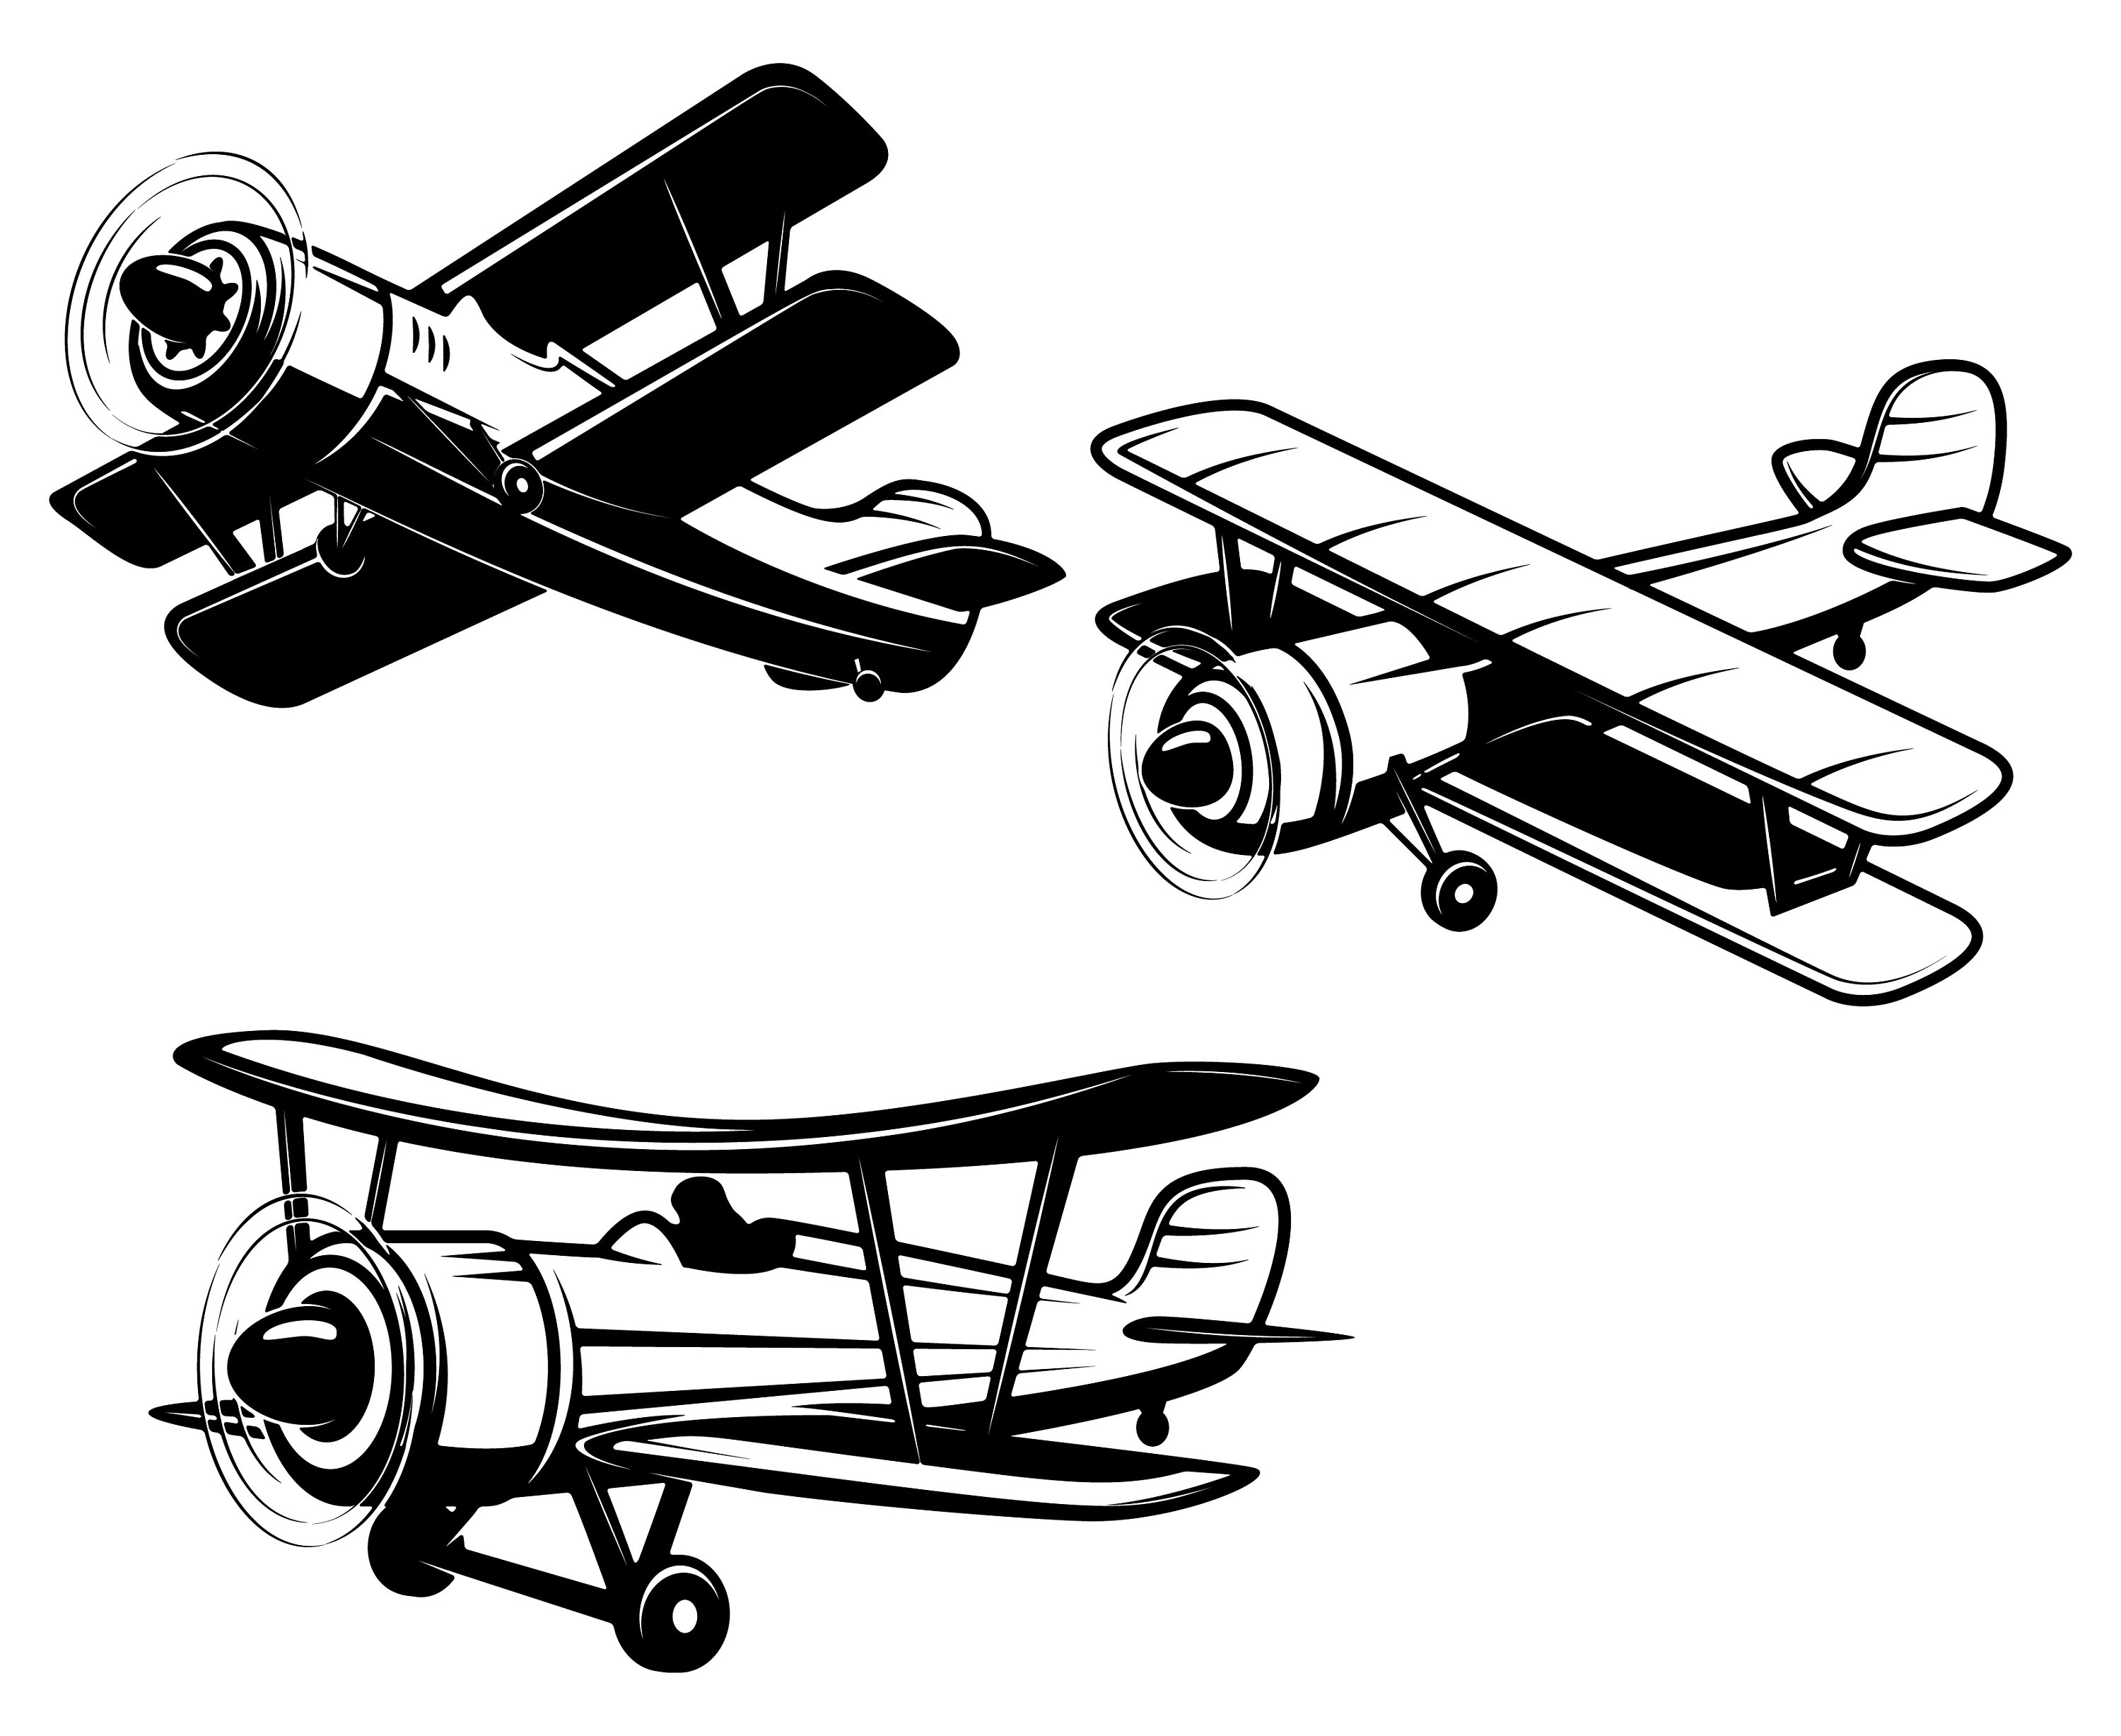 Biplane clipart aviation, Biplane aviation Transparent FREE.